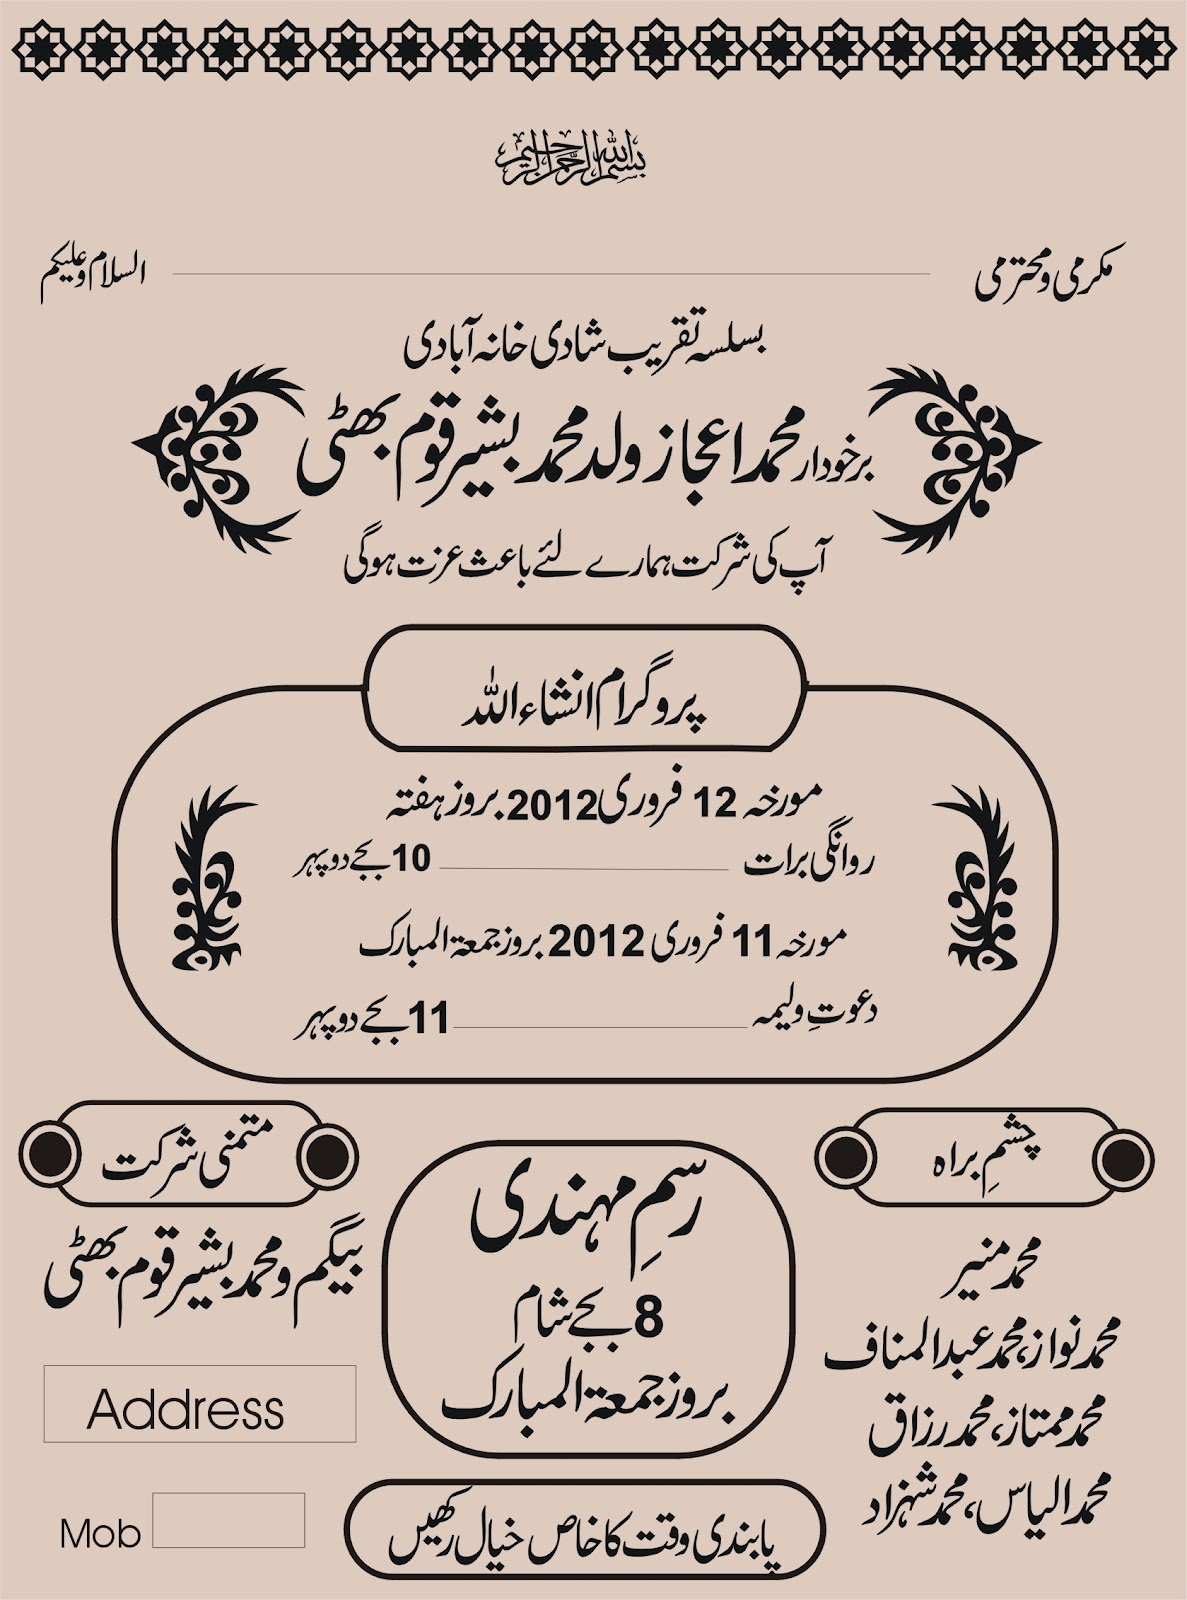 Urdu Shadi Card Shadi cards